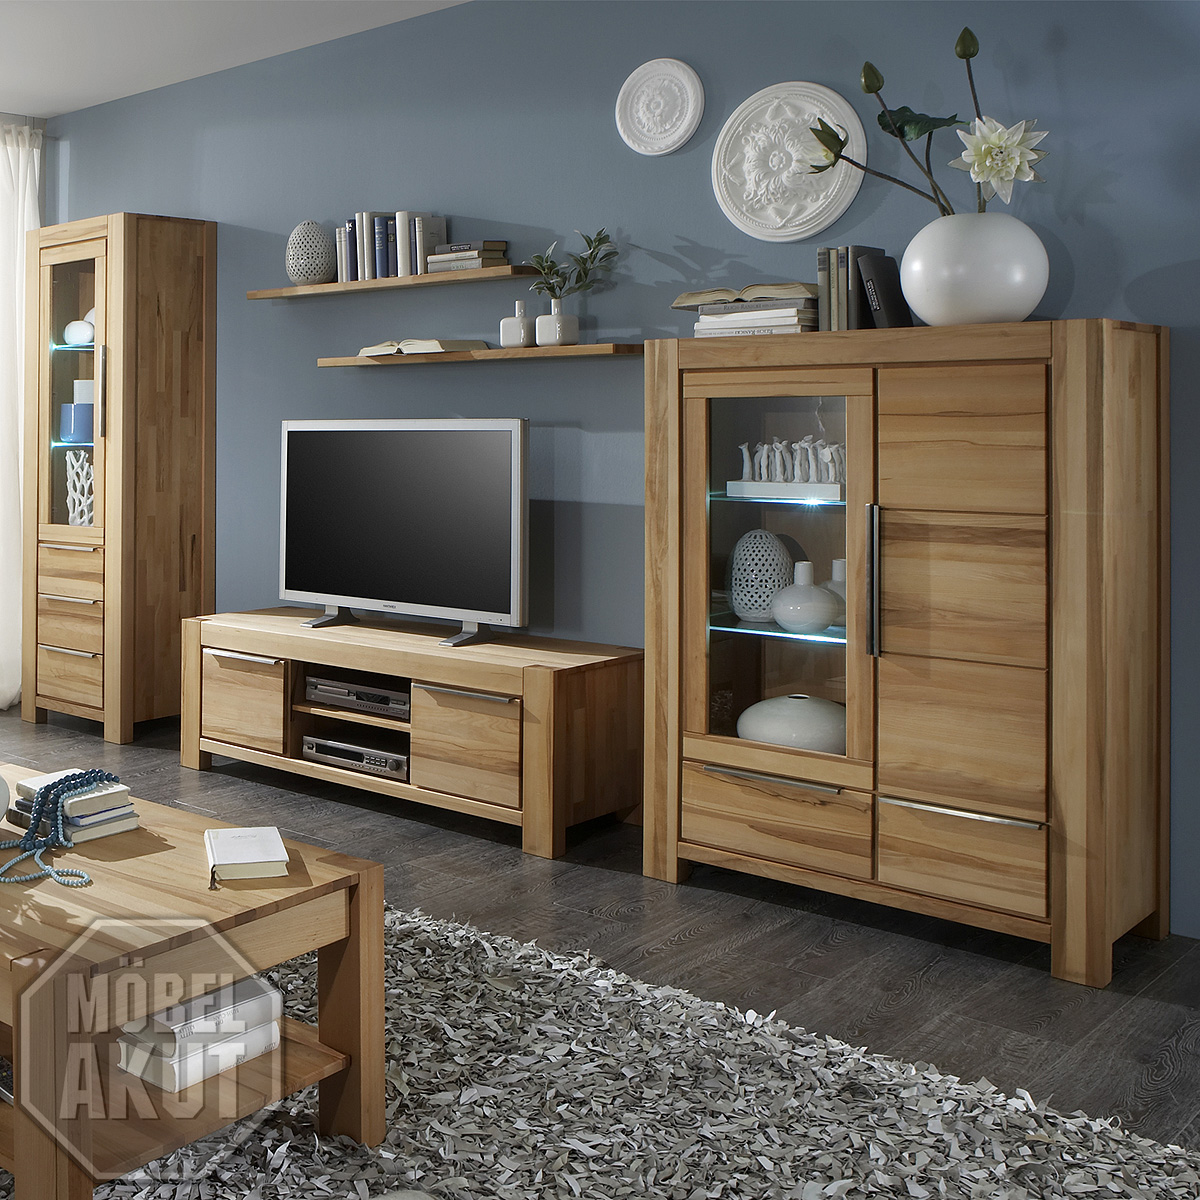 wohnwand nena anbauwand wohnkombi wohnzimmer in kernbuche. Black Bedroom Furniture Sets. Home Design Ideas